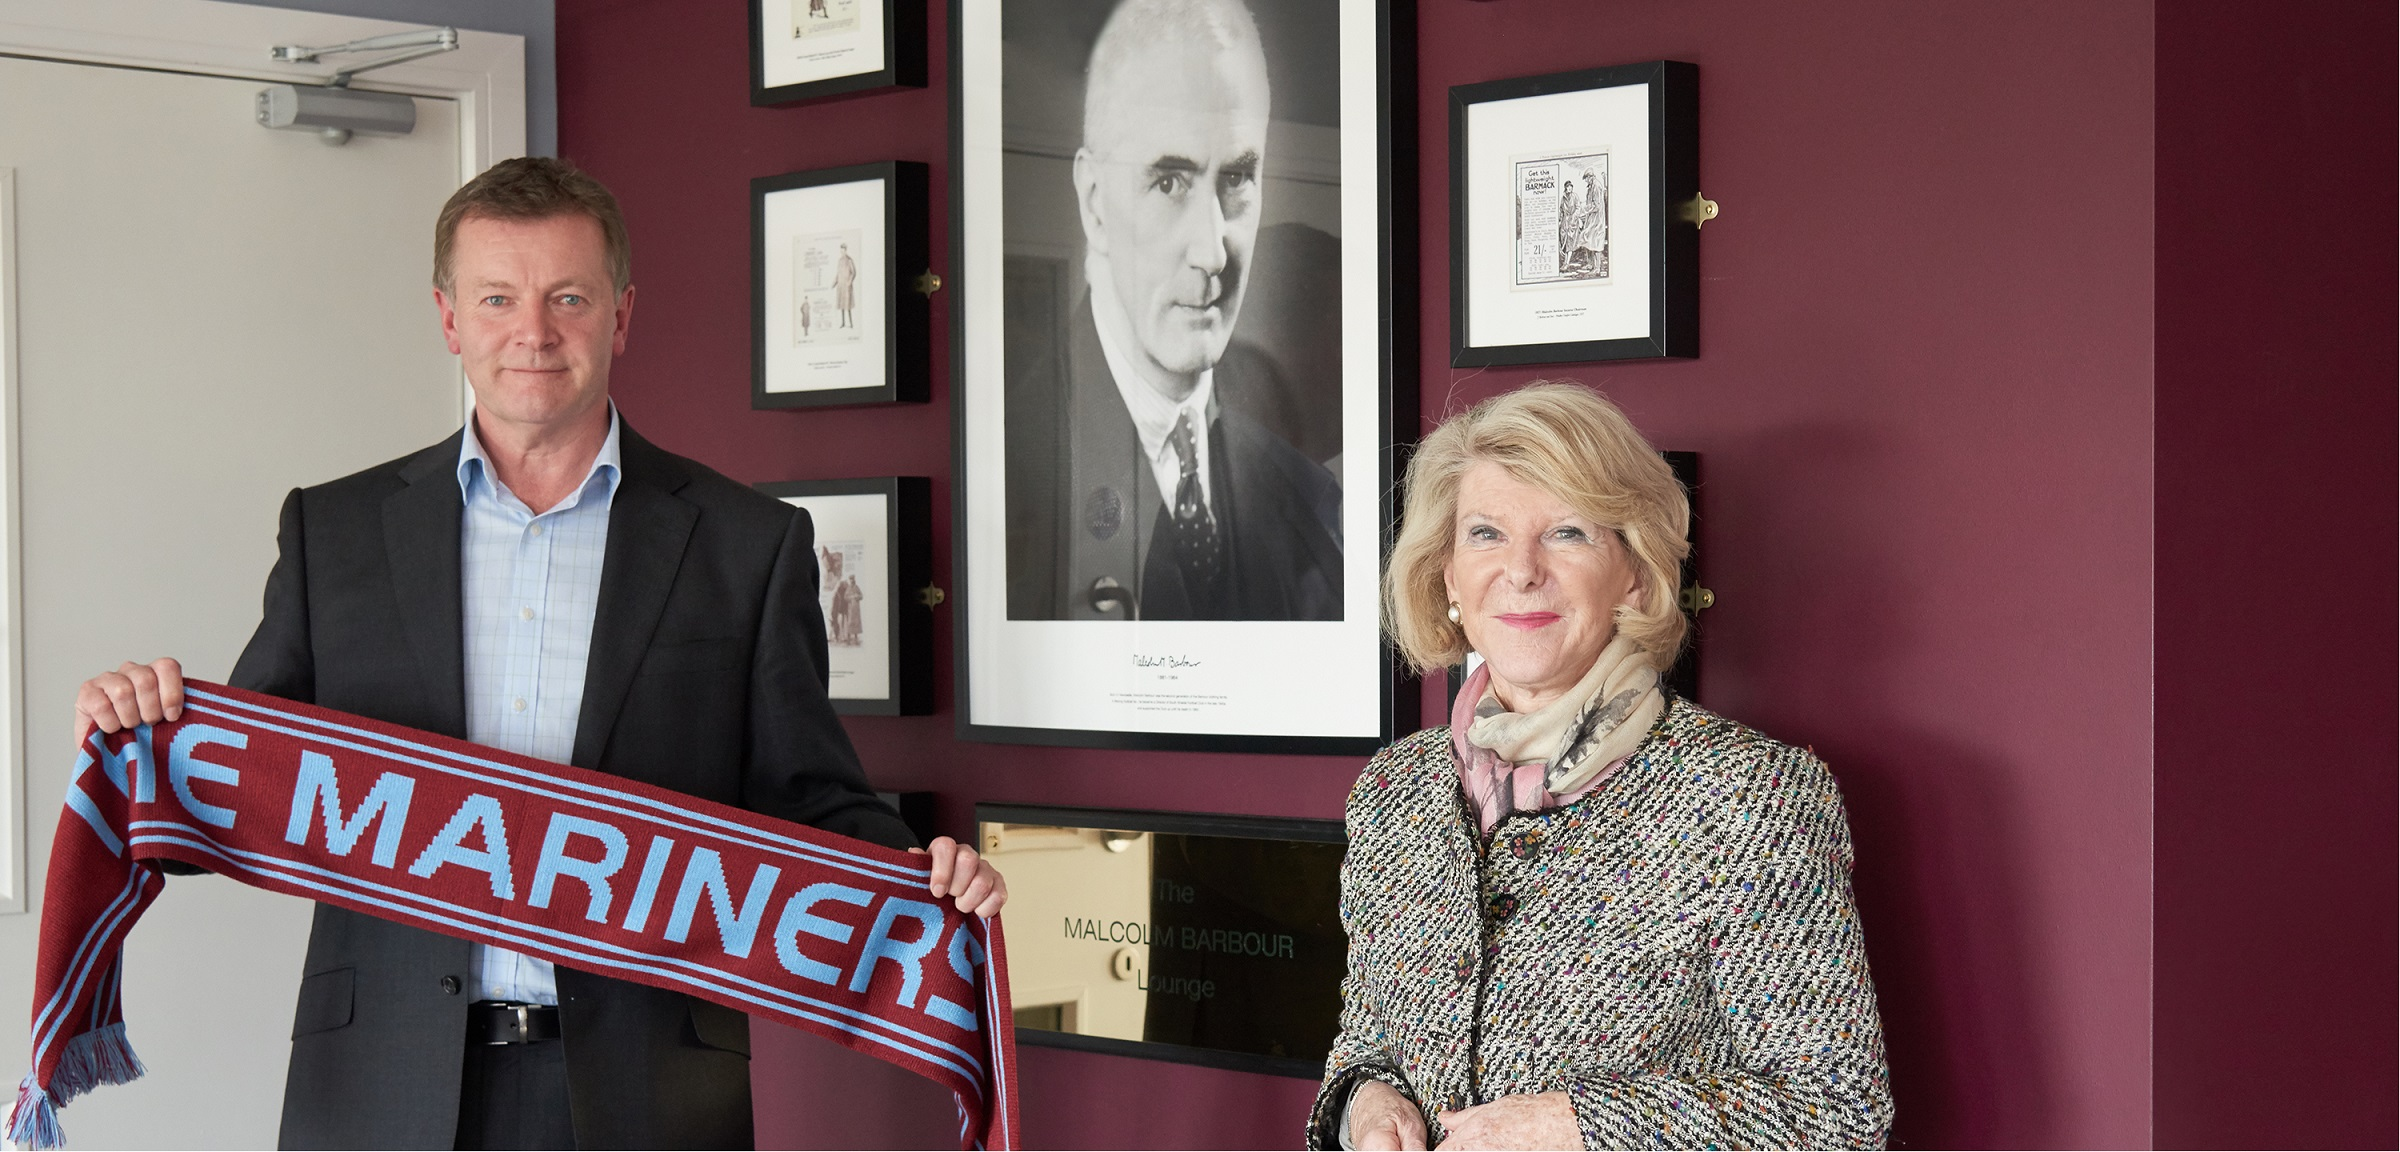 Dame Margaret Barbour opens Malcolm Barbour Lounge at Mariners Park